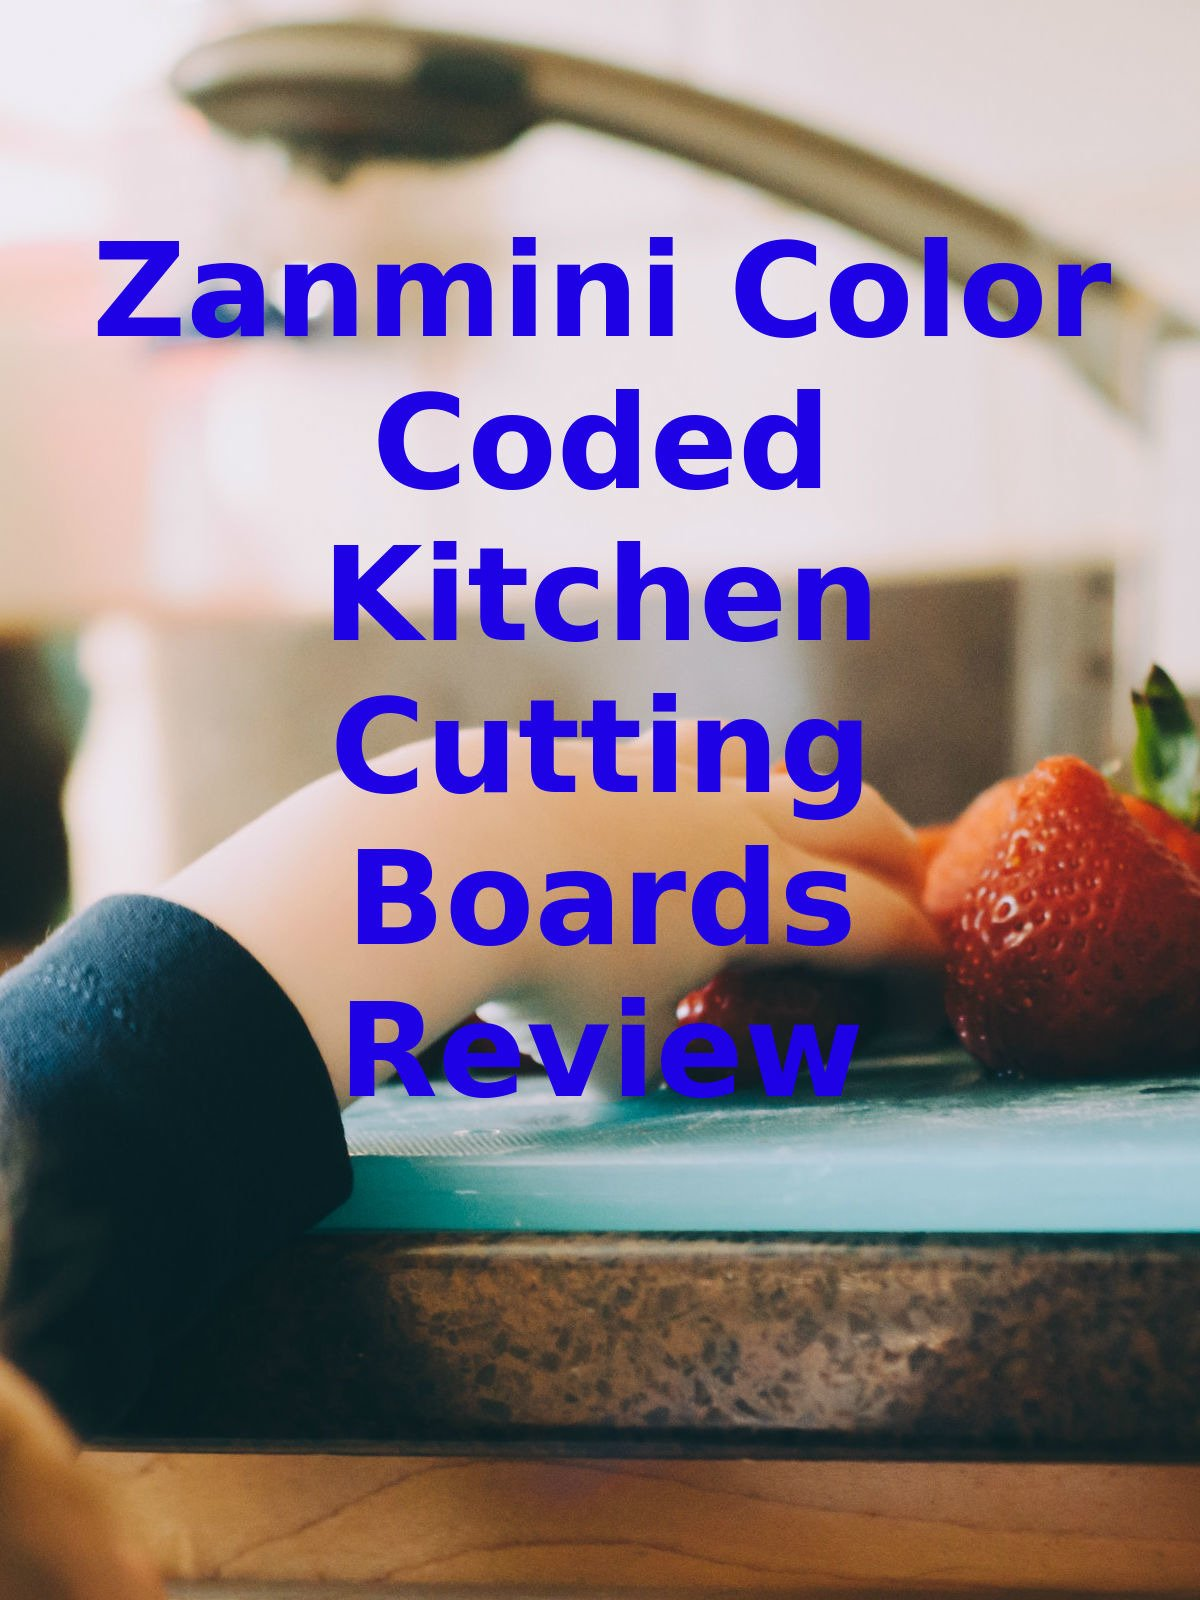 Review: Zanmini Color Coded Kitchen Cutting Boards Review